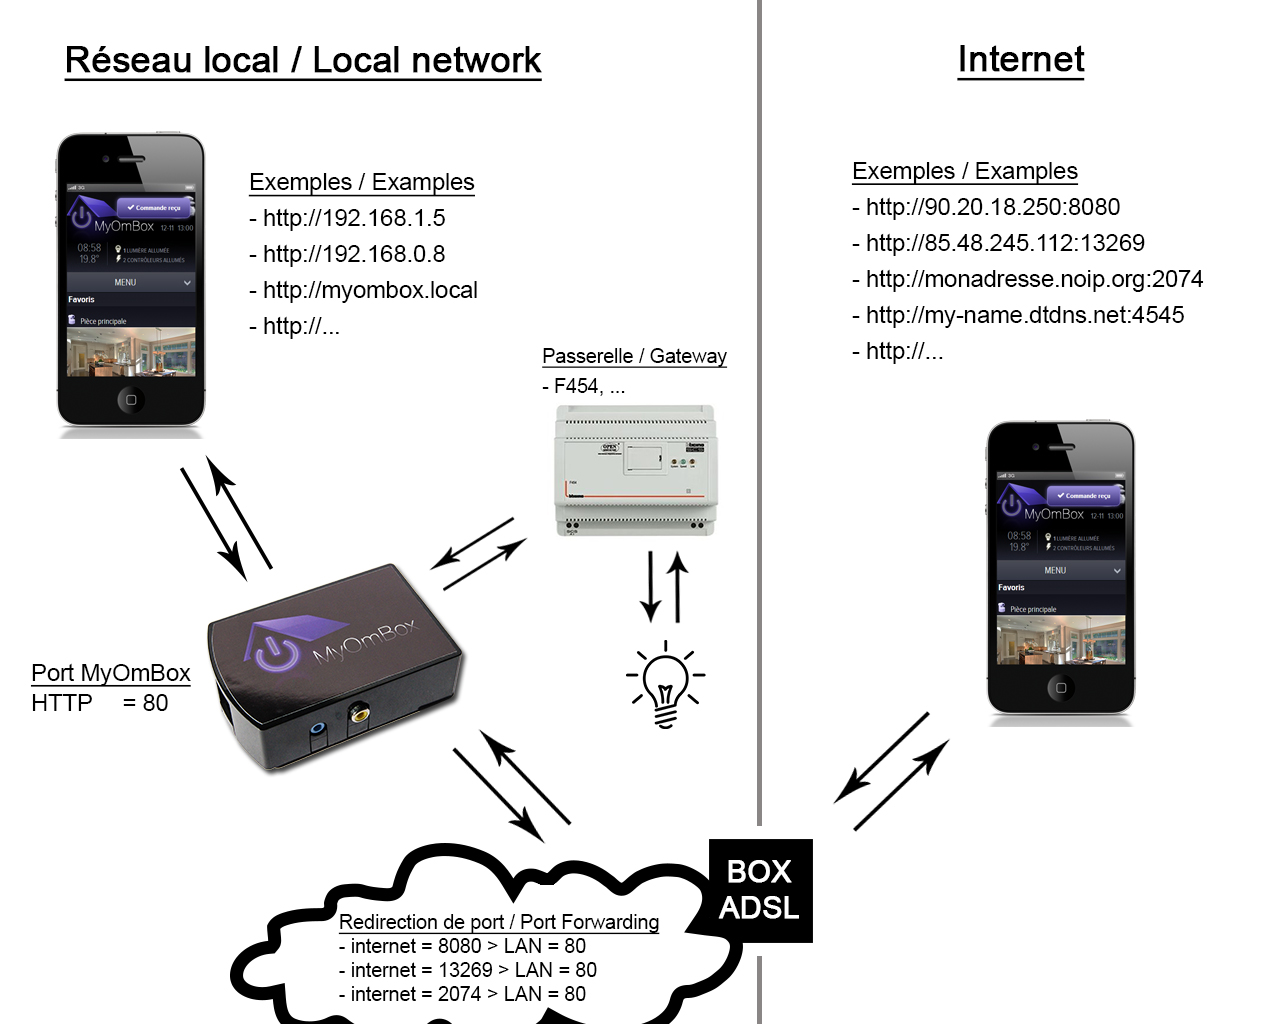 port forwarding configuration explanation